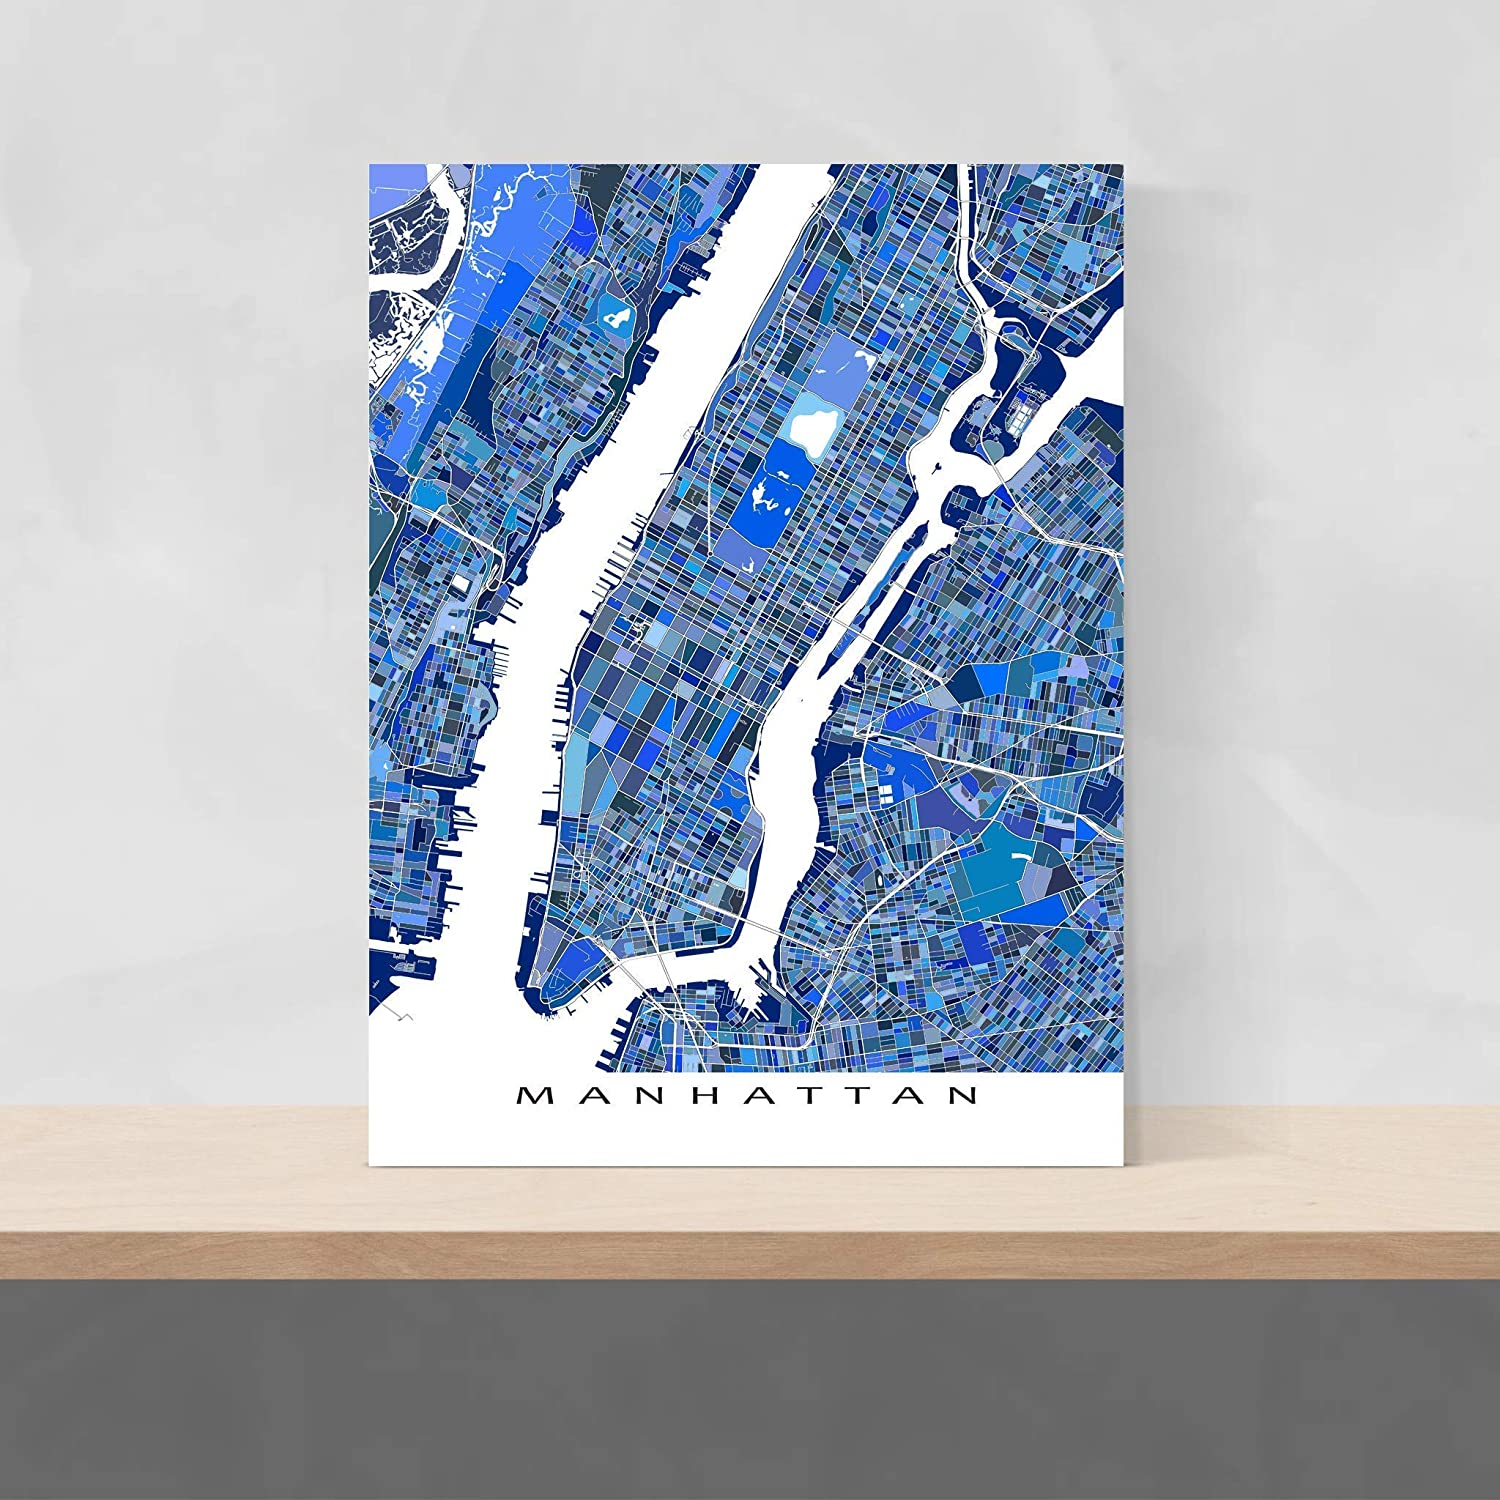 Amazon Com Manhattan Map Print 8x10 New York Manhattan Map Poster 24x36 Handmade Blue Geometric Manhattan Map Art Prints Nyc By Maps As Art Handmade